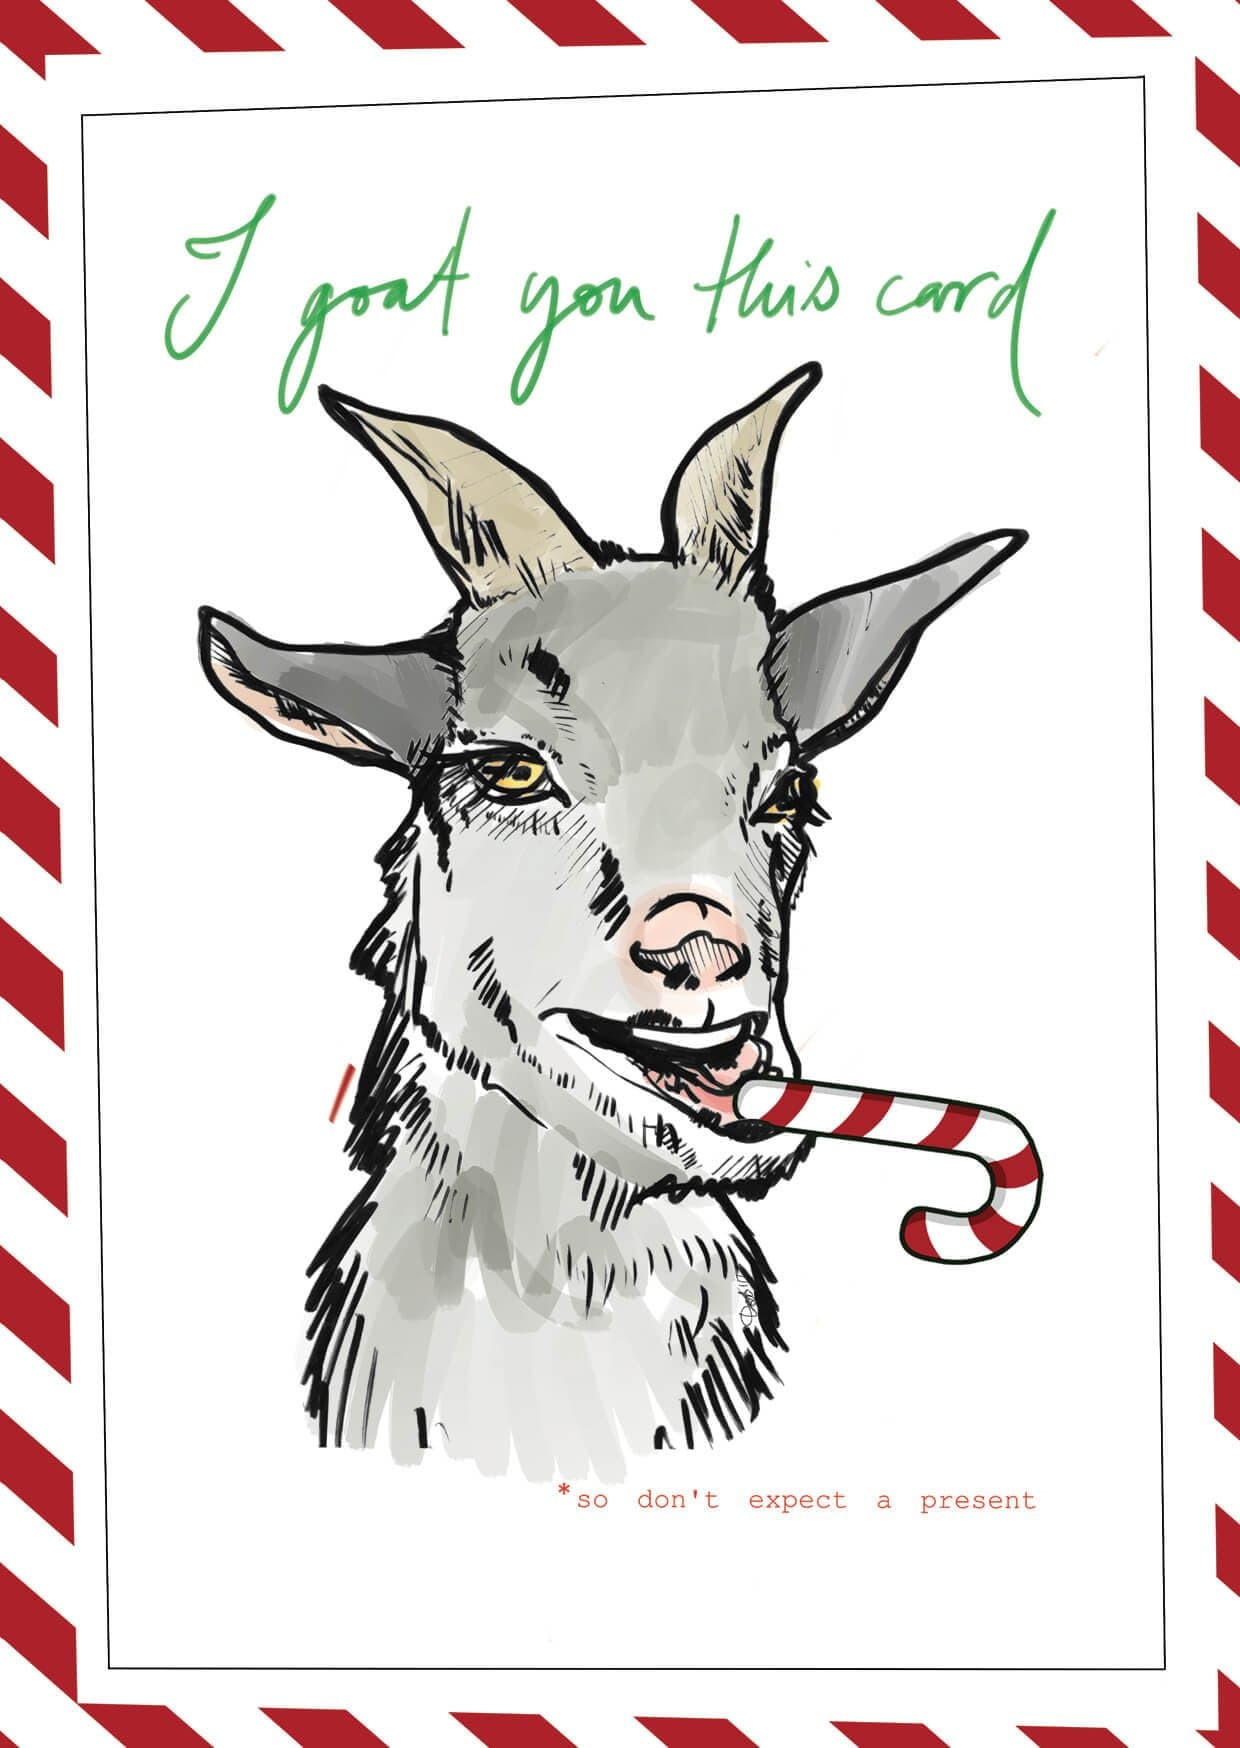 This image is of a card which features a goat with a candy cane.